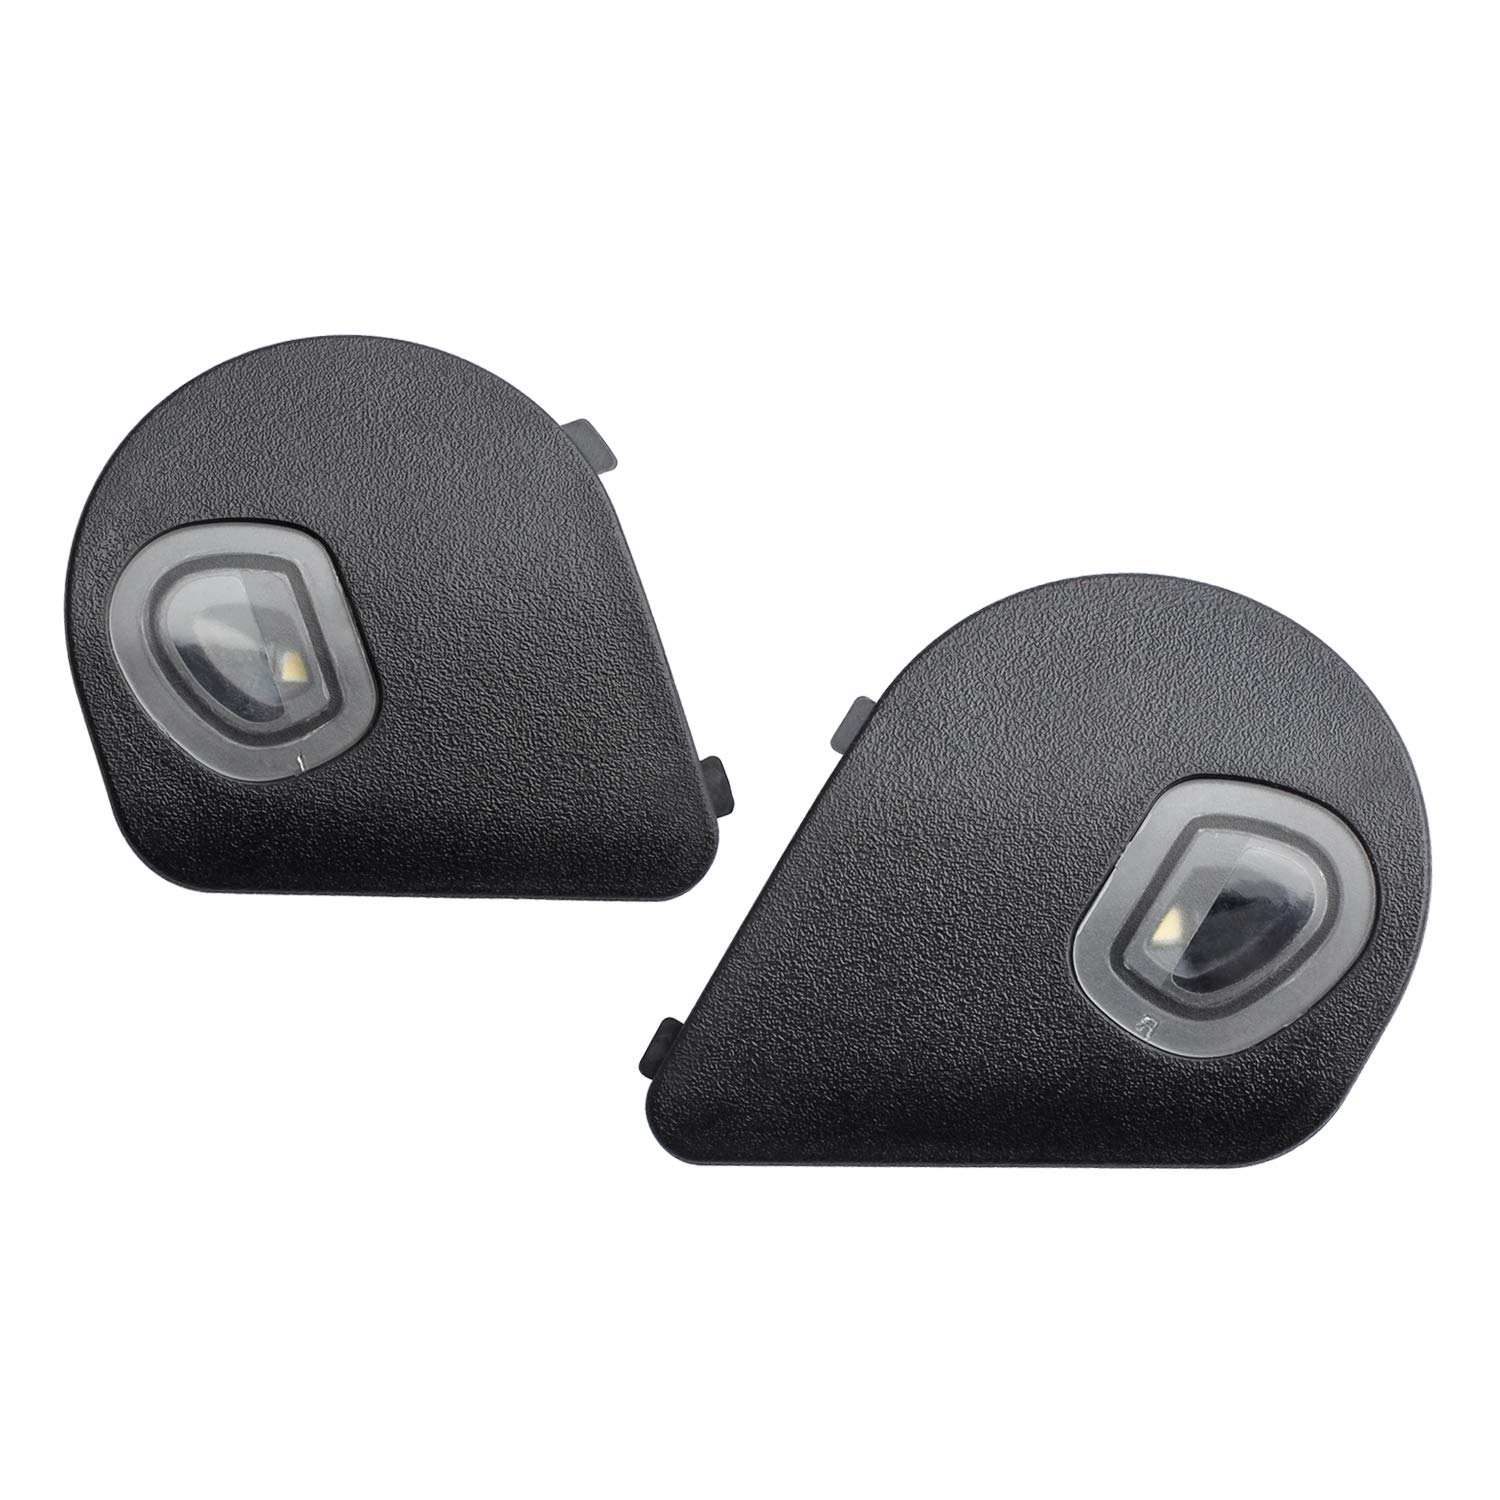 HERCOO LED Puddle Lights Driver and Passenger Side Mirror White Lamps Smoked Lens Compatible with 2010-2018 Dodge Ram 1500 2500 3500 Pack of 2